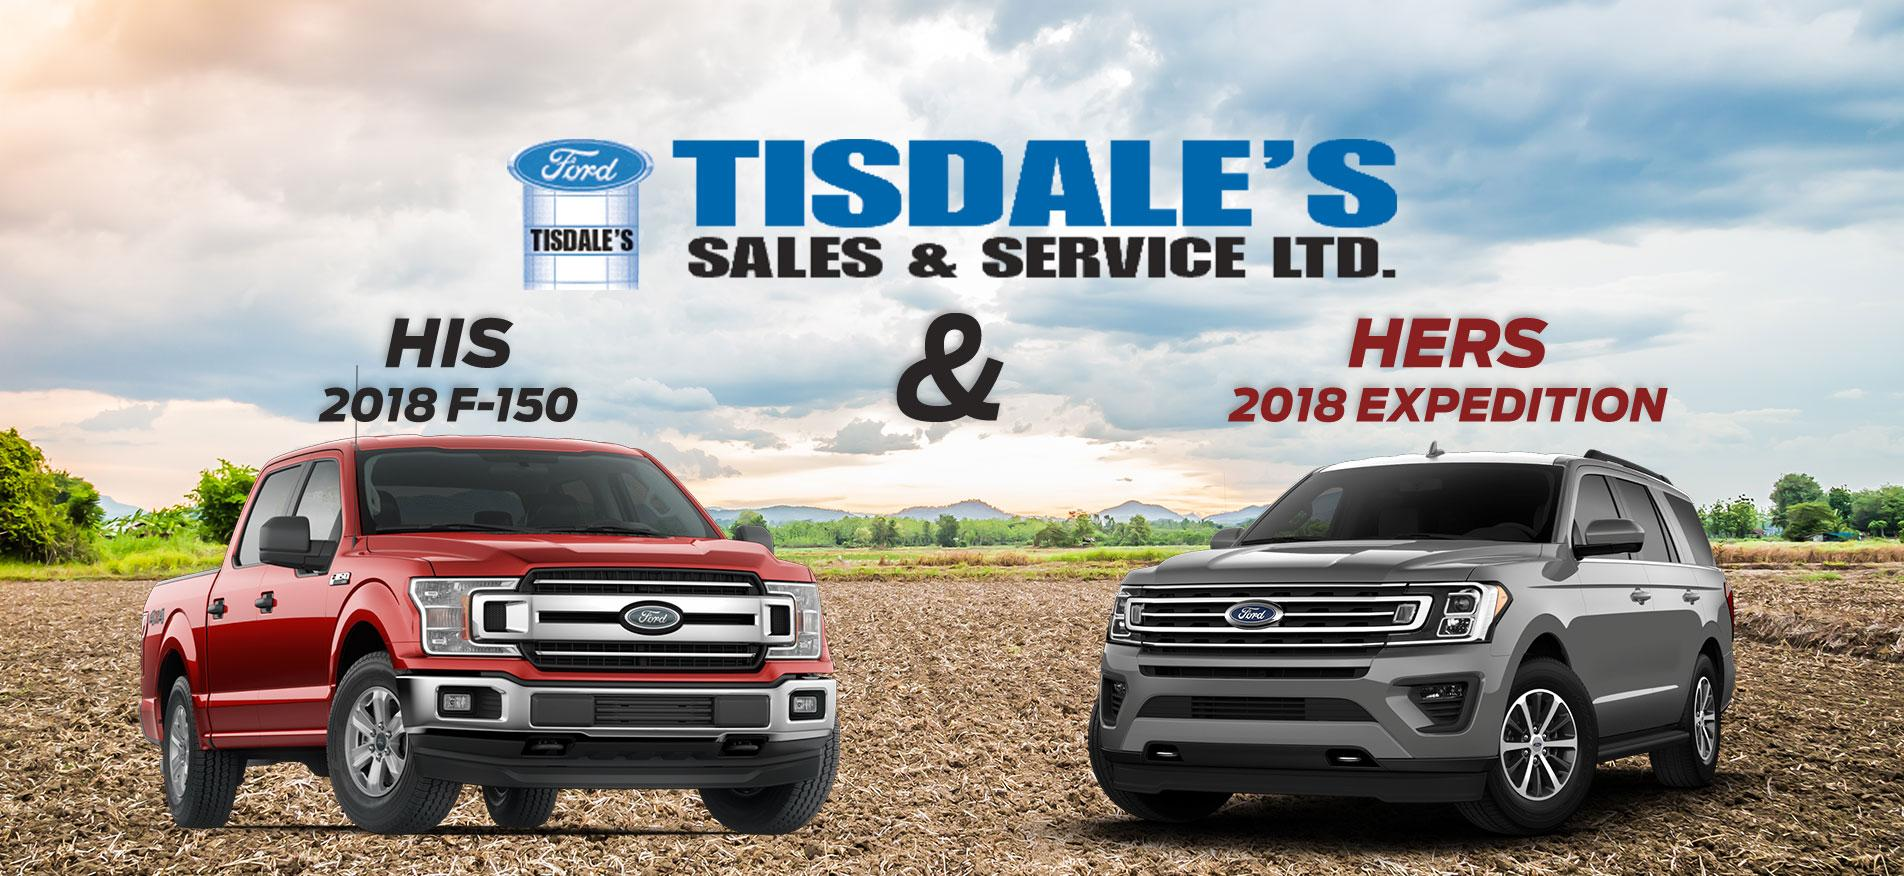 His 2018 F-150 & Hers 2018 Expedition Tisdales Sales and Service